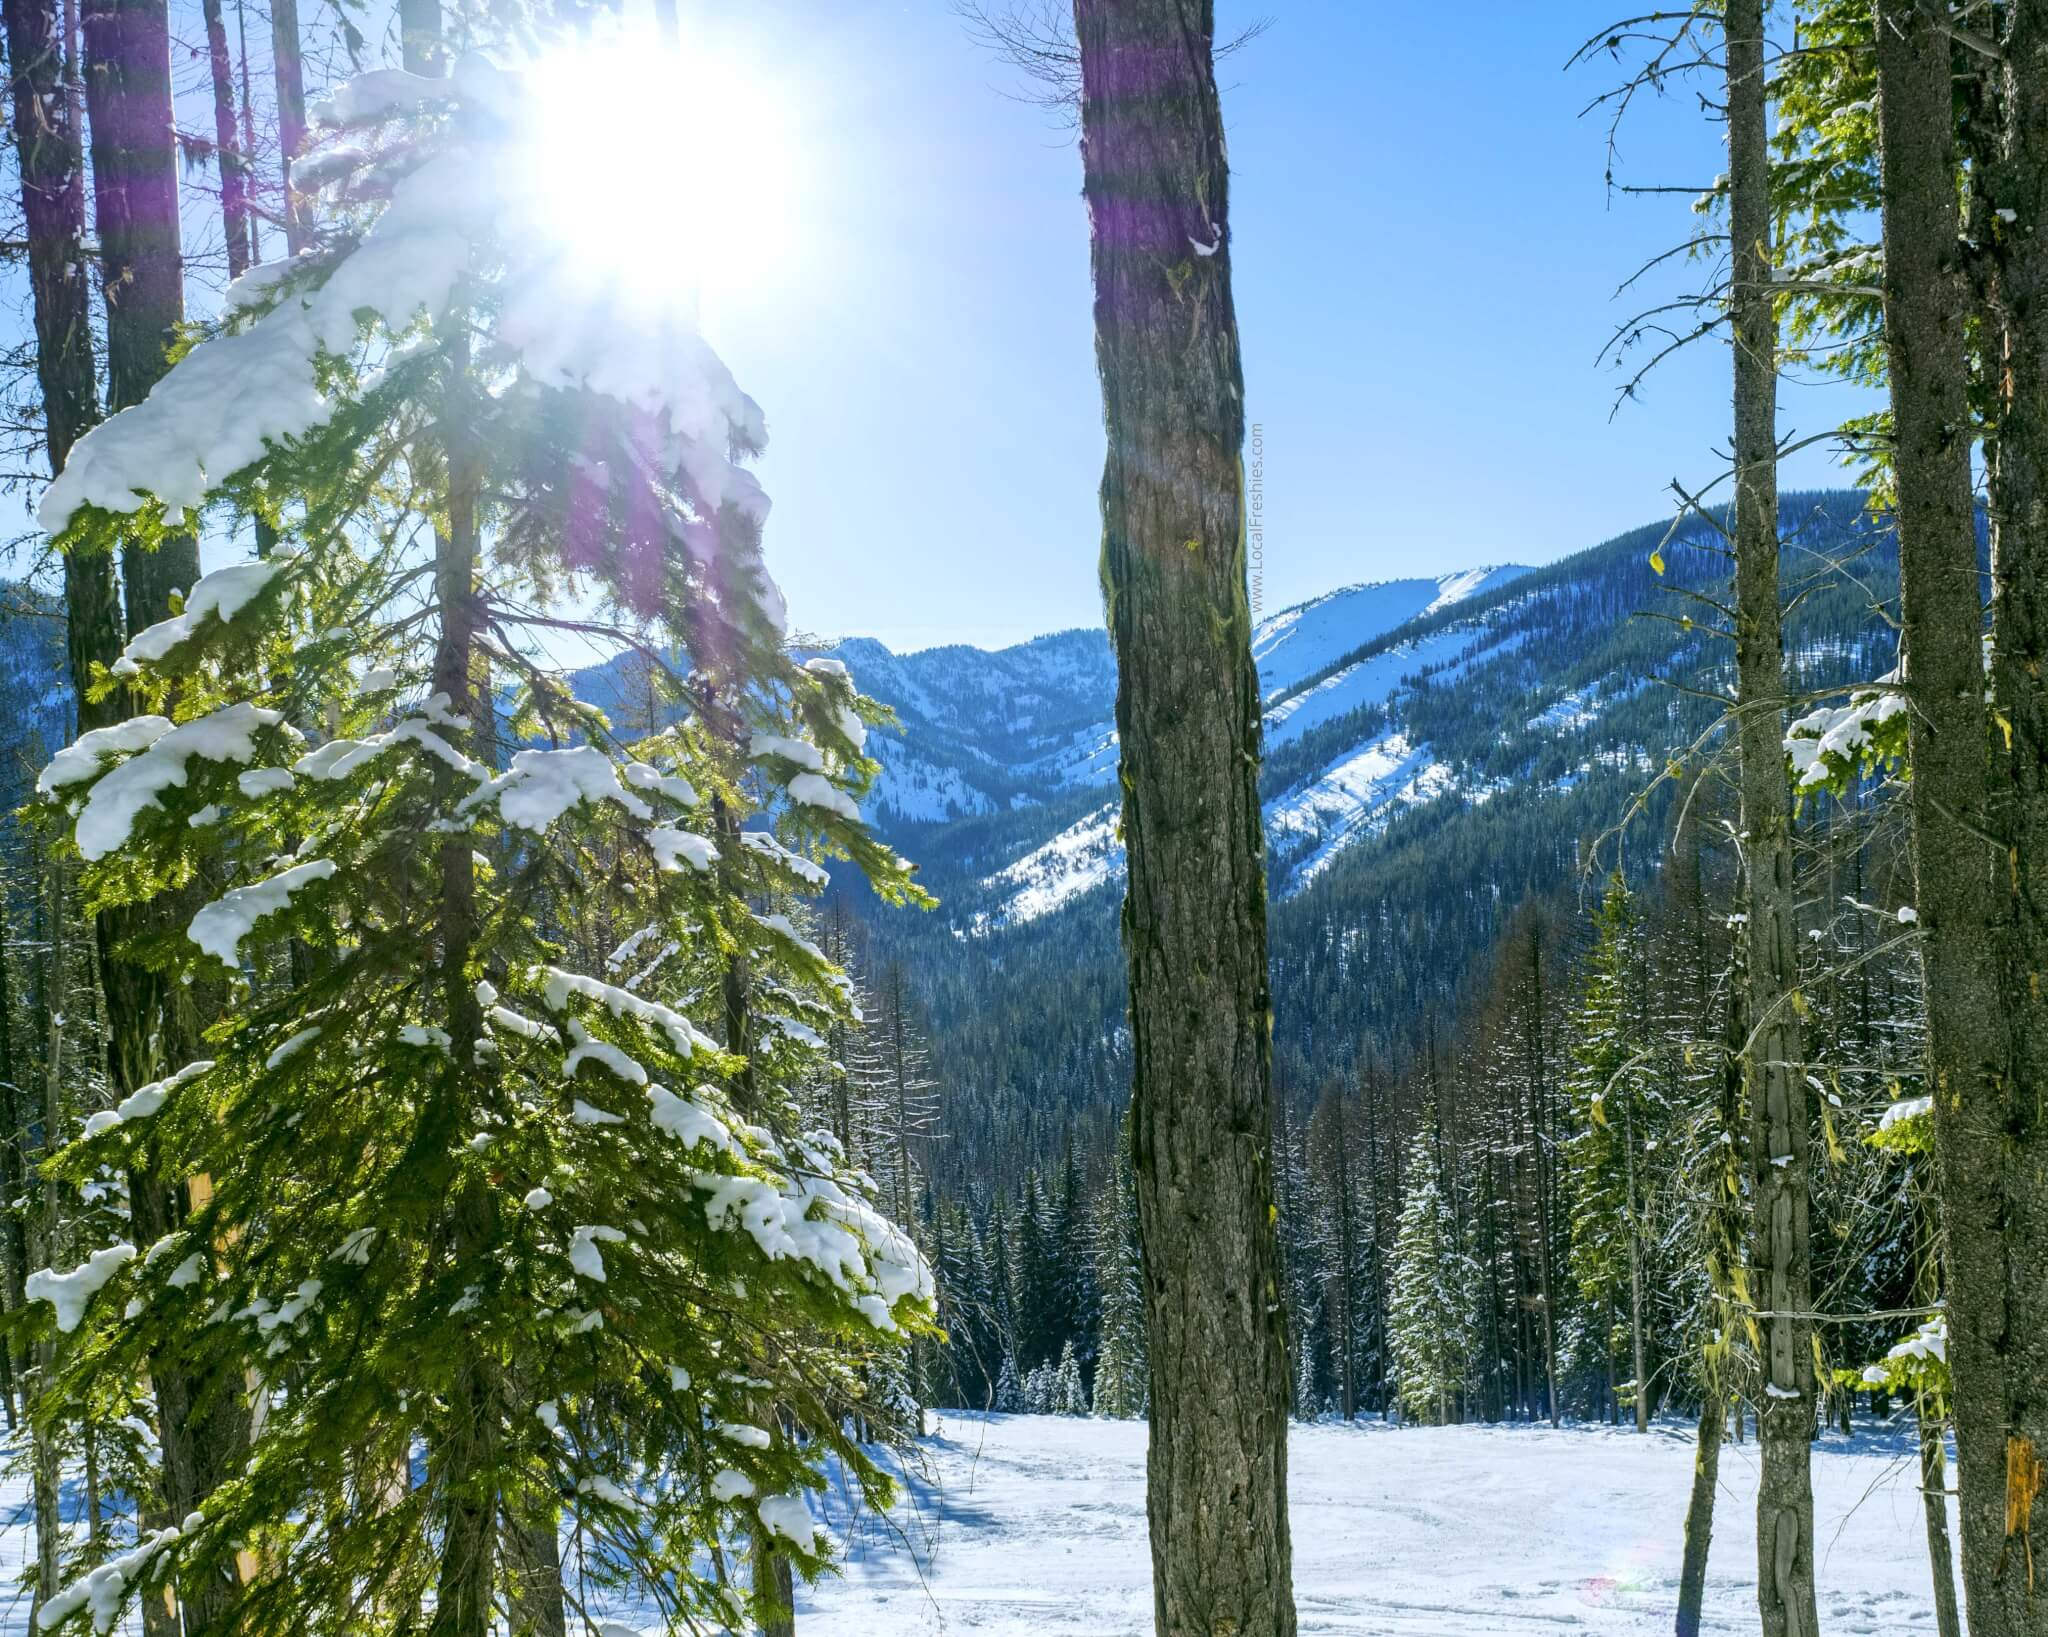 Lookout Pass expansion snowboarding sunshine Idaho